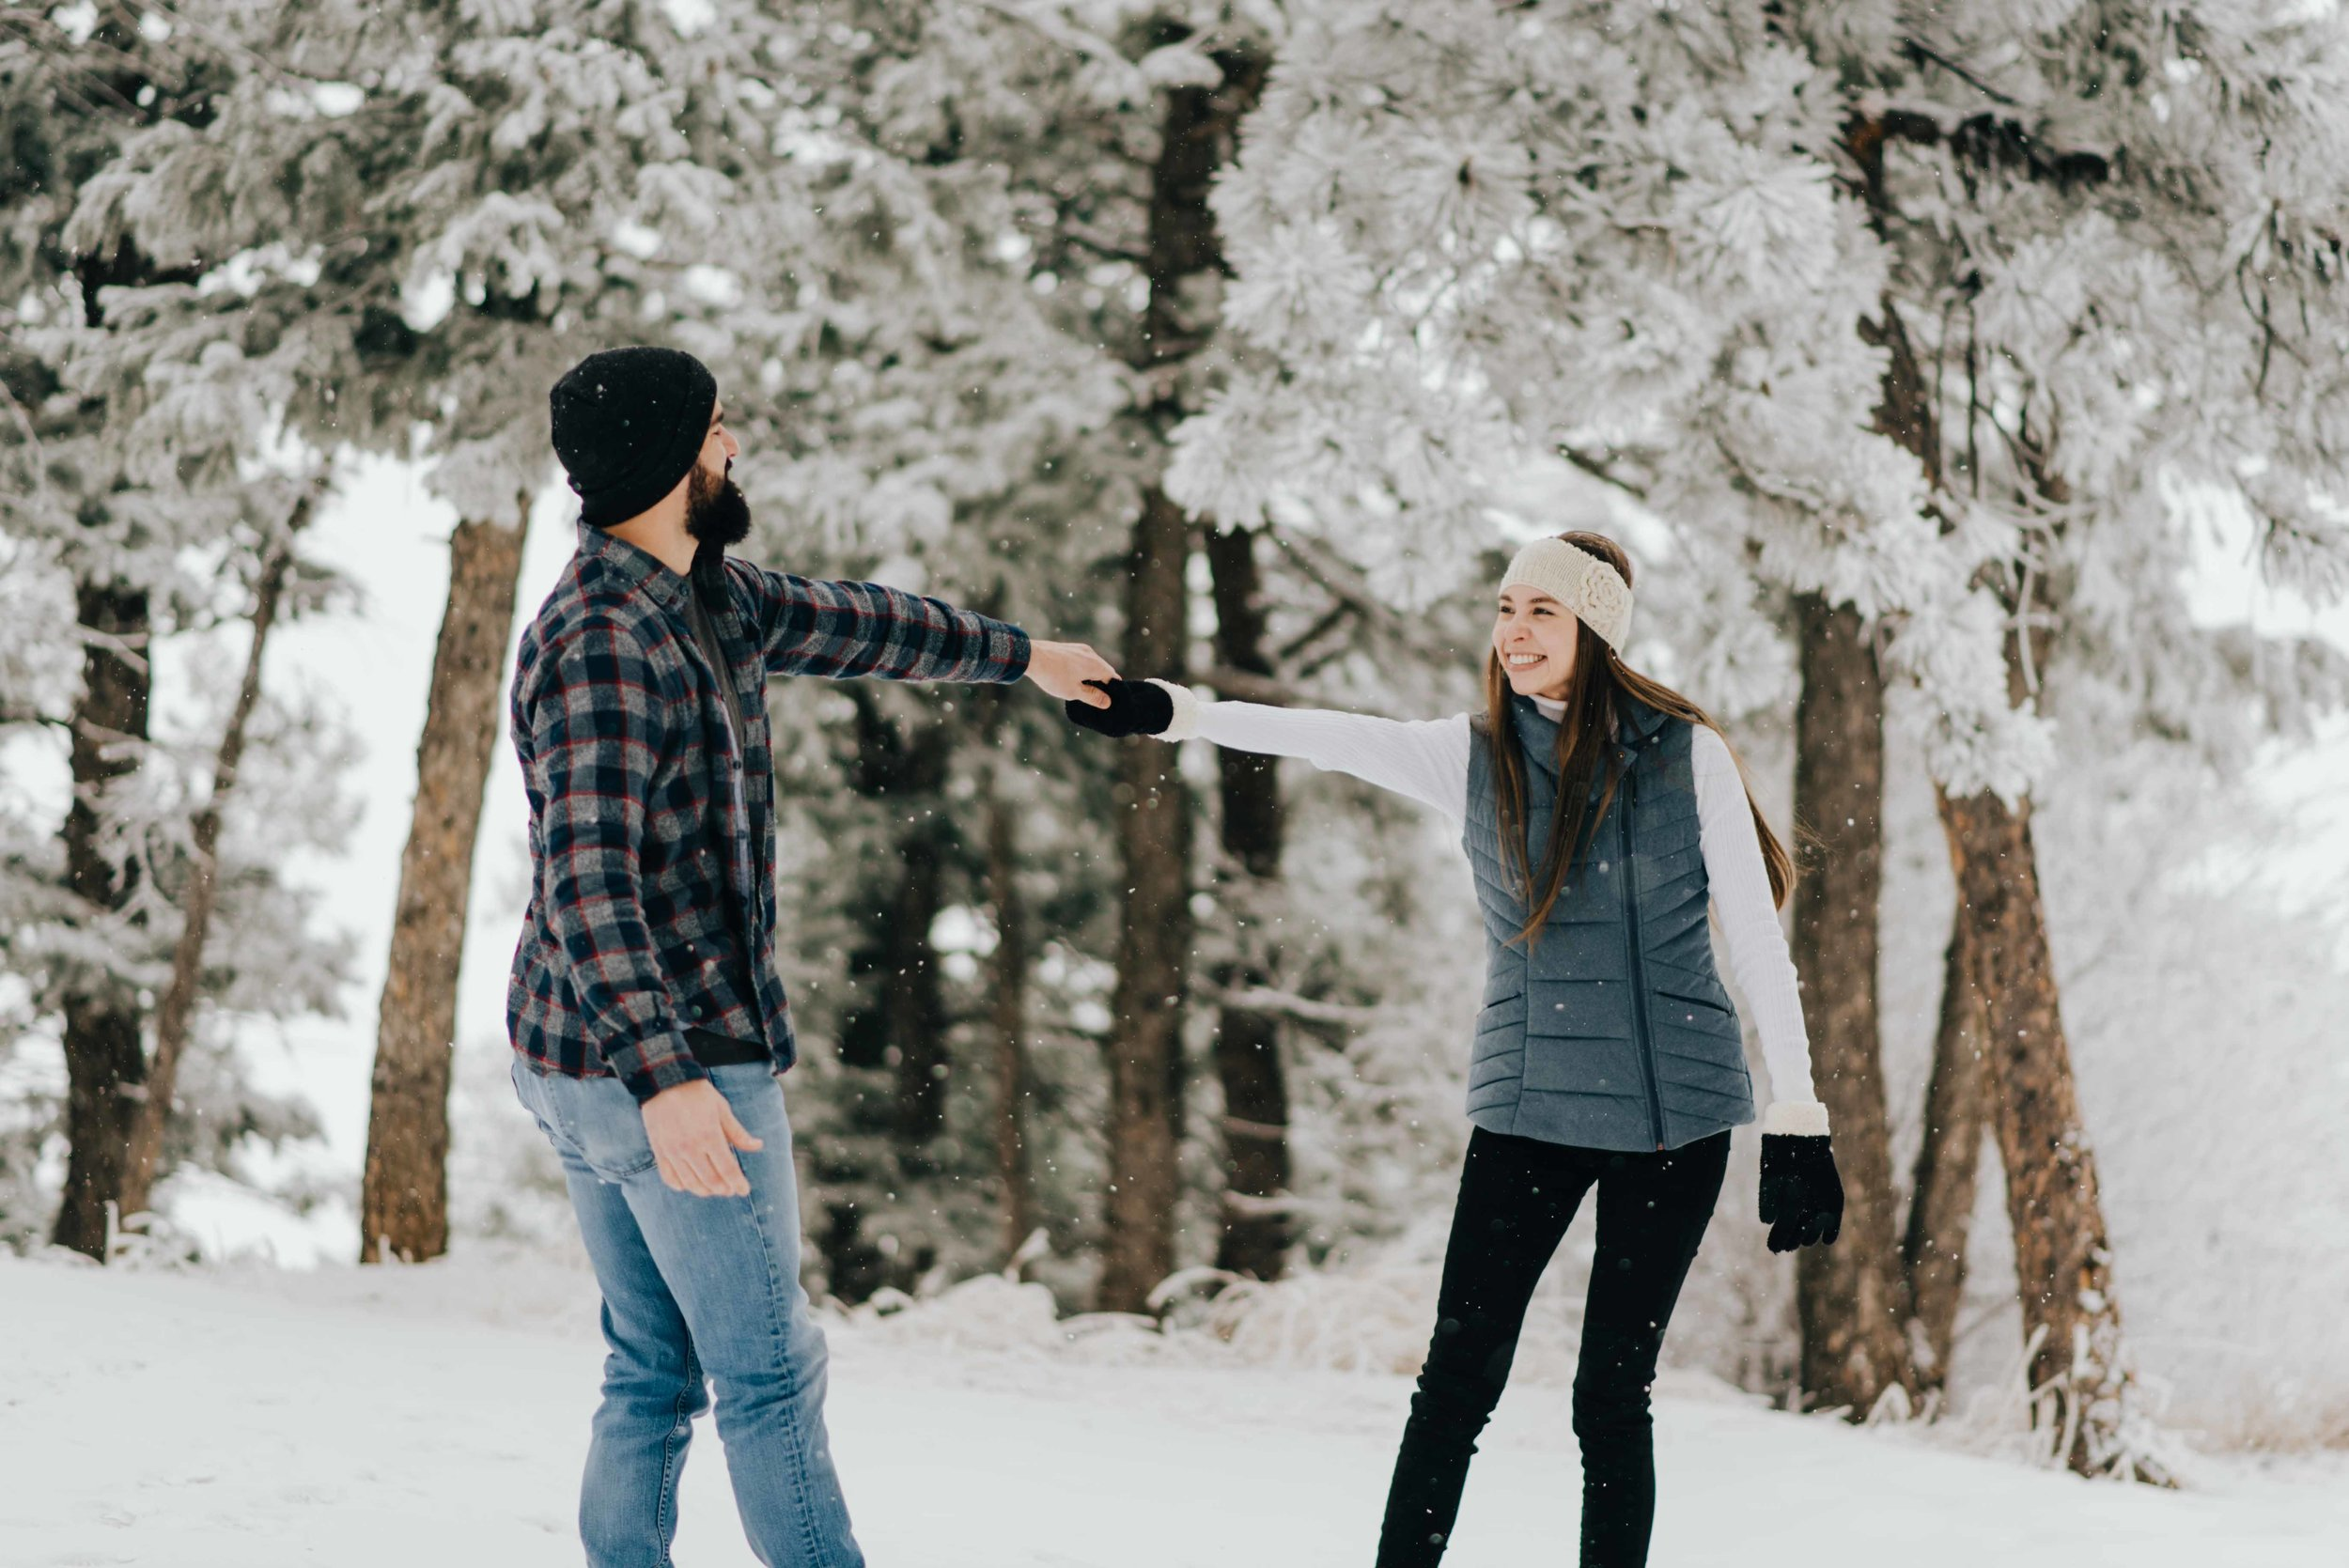 Tani and Nik dancing in the snow during their snowy engagement session in Golden, Colorado.